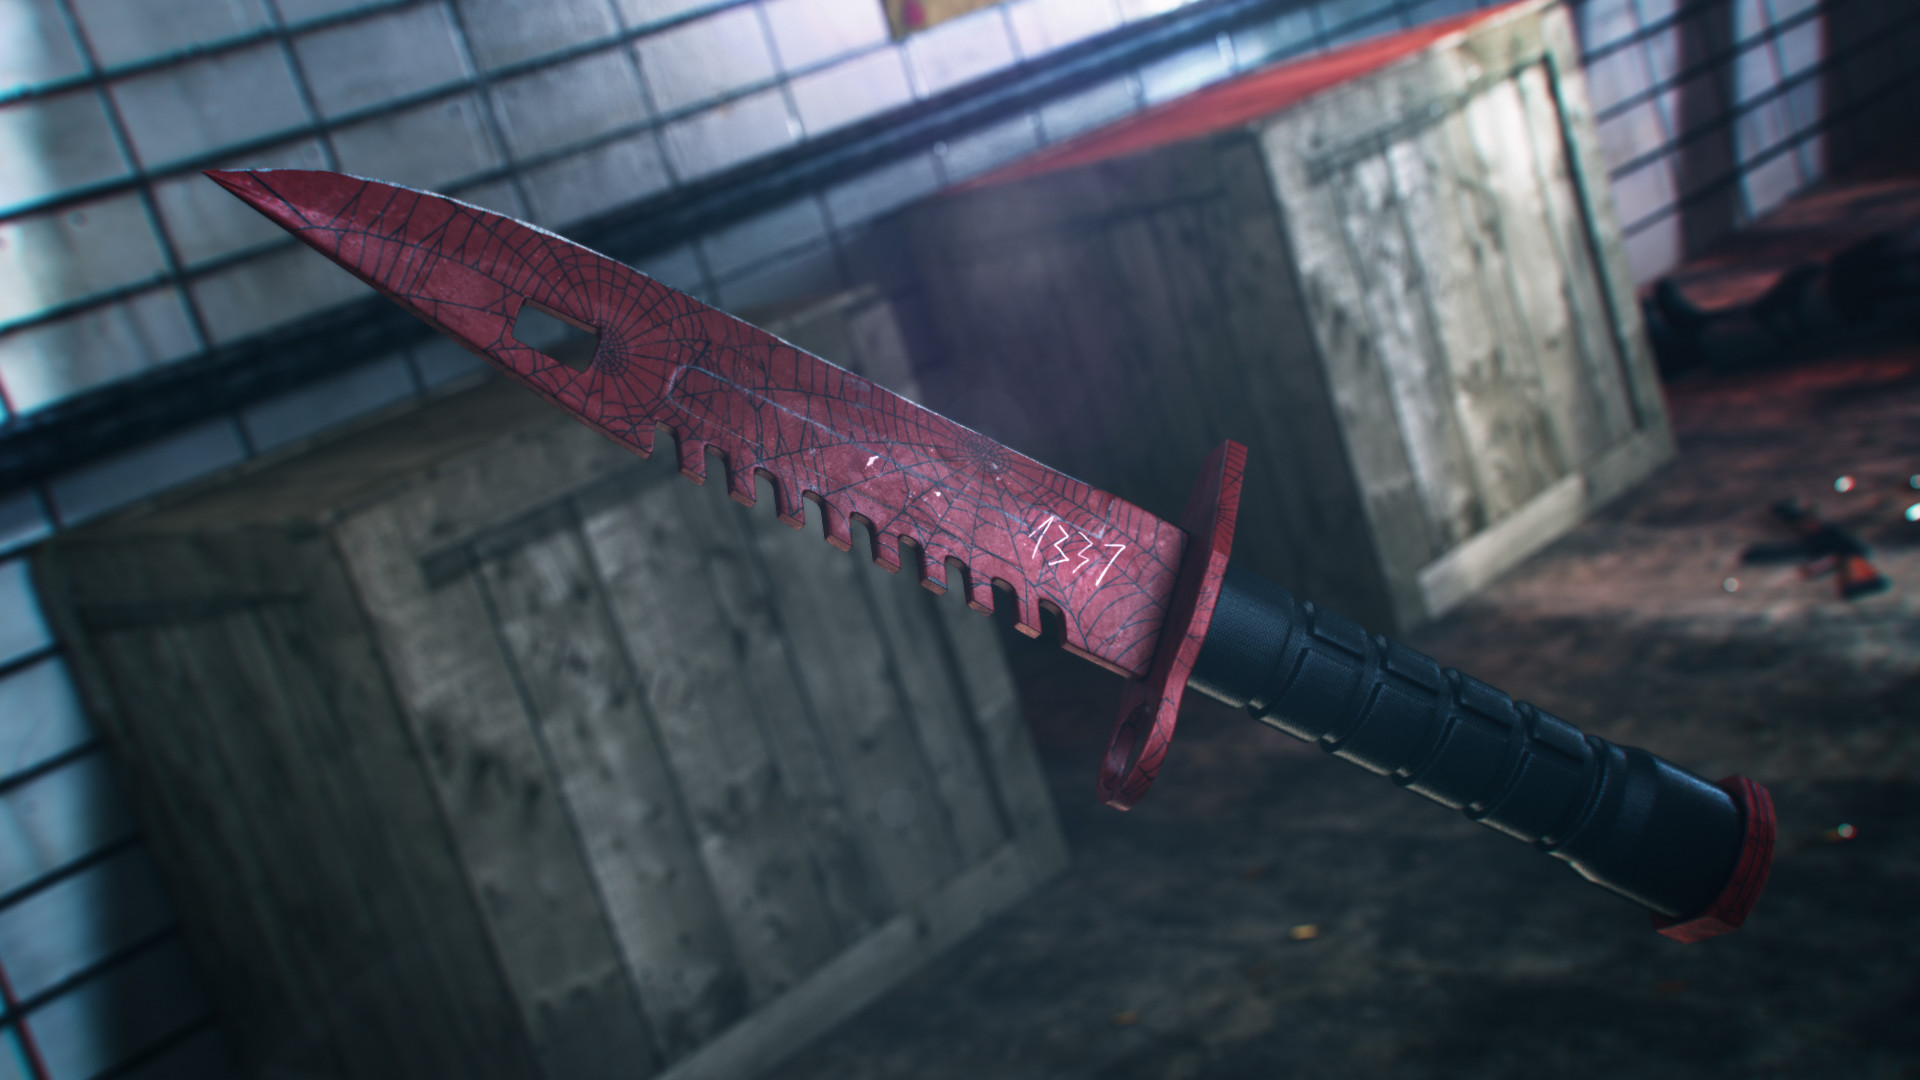 105 Amazing Cs Go Wallpapers Background Images: Cs Go Knife Wallpaper (93+ Images